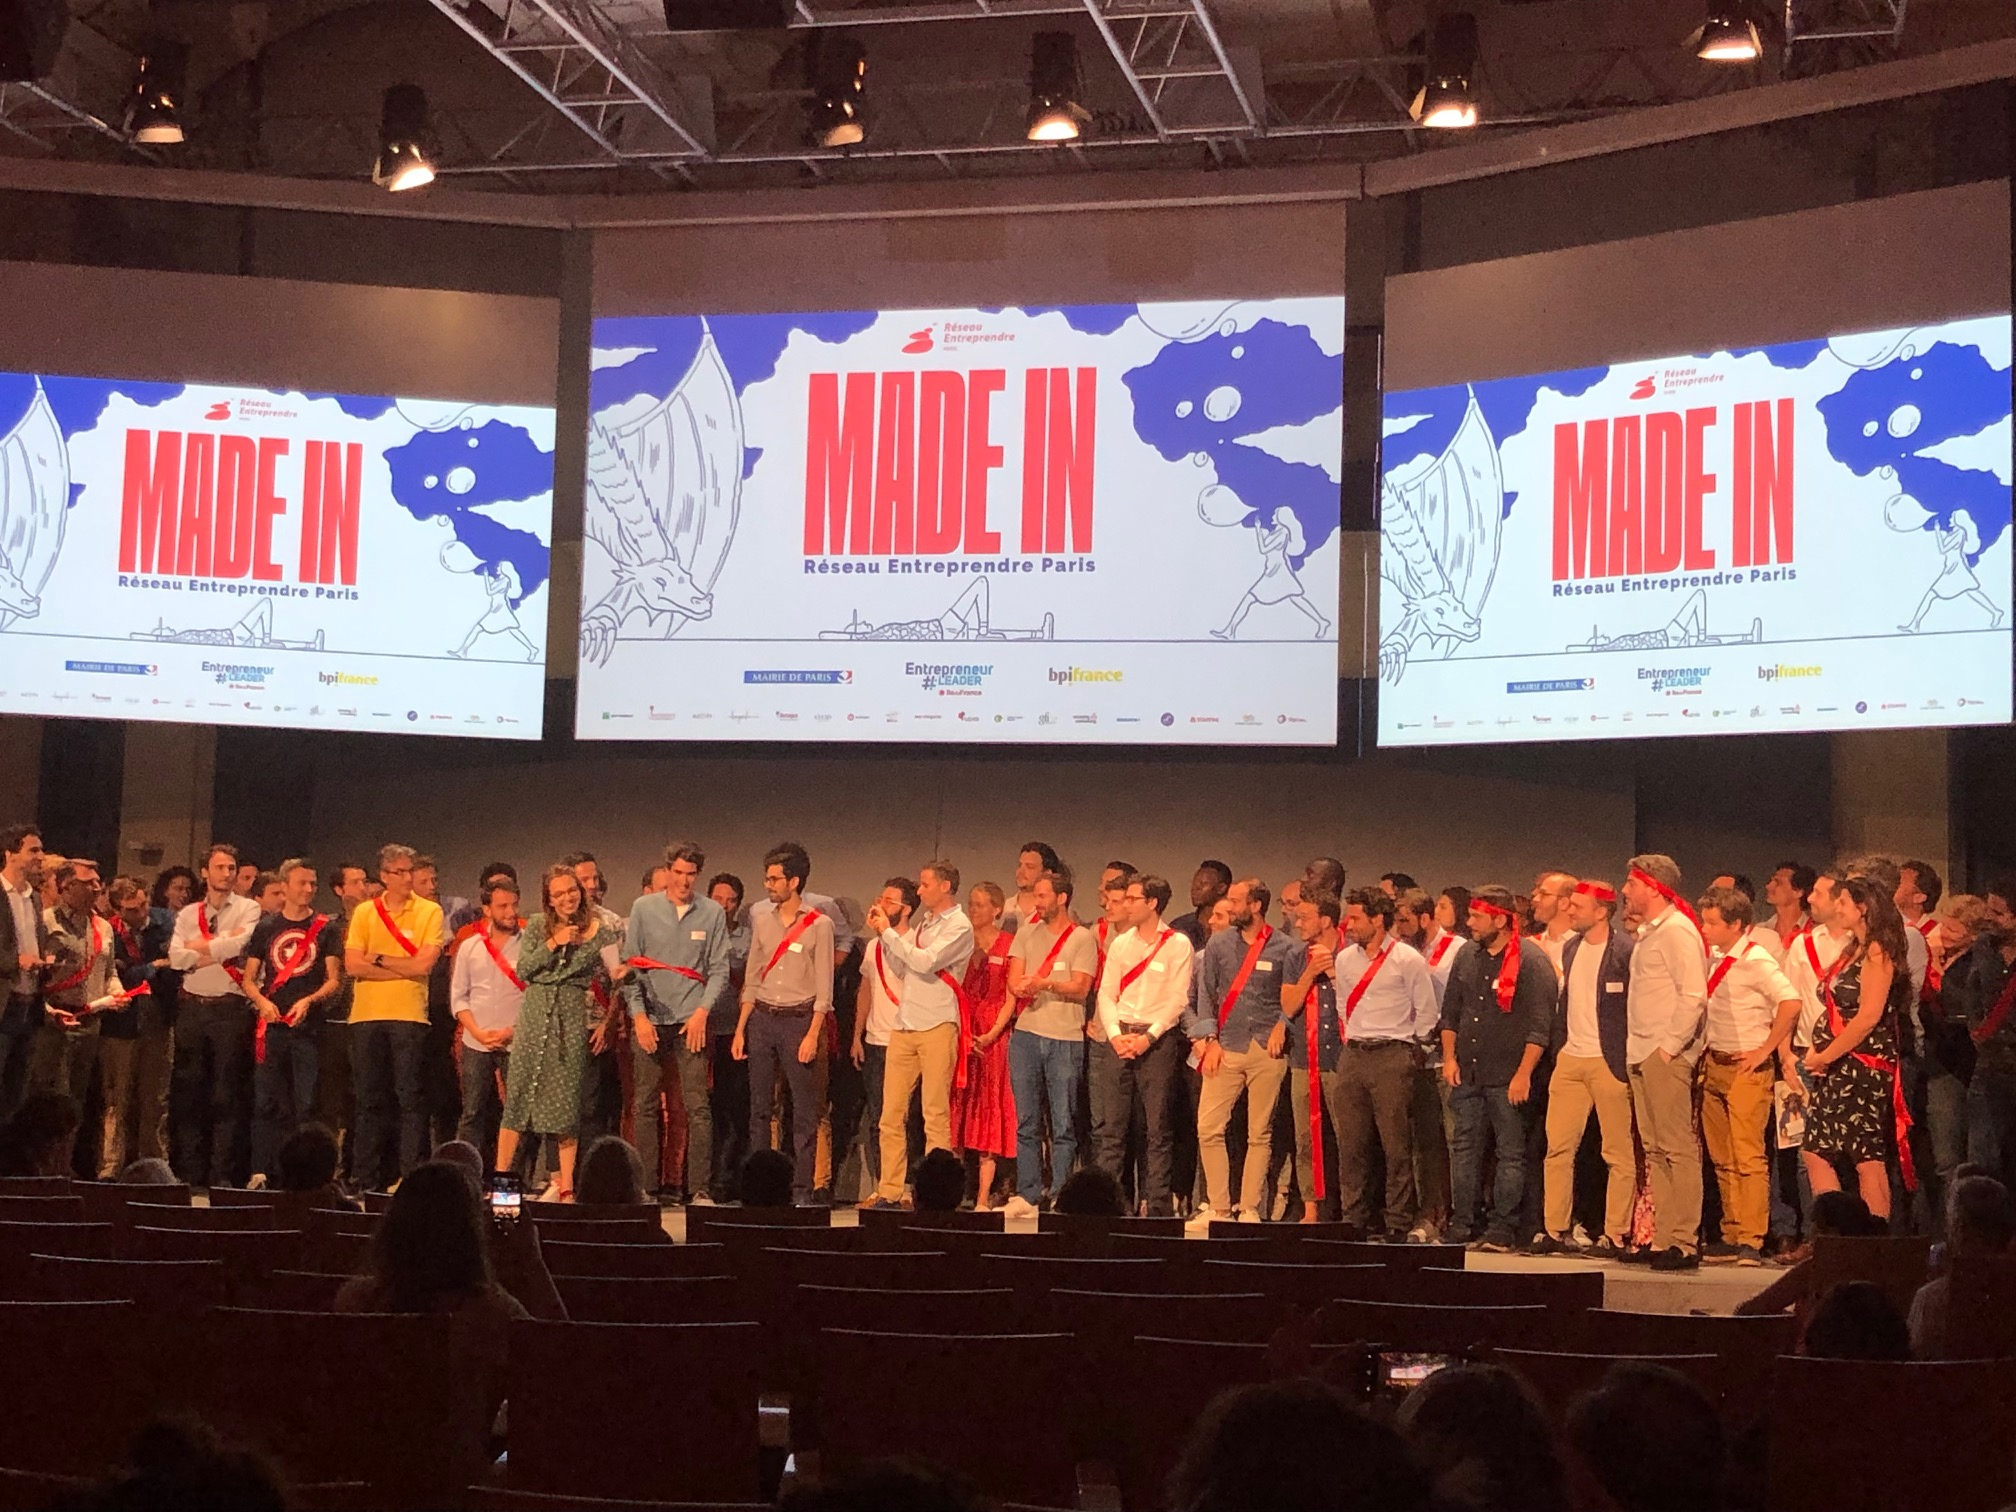 Made-in-reseau-entreprendre-paris-2019